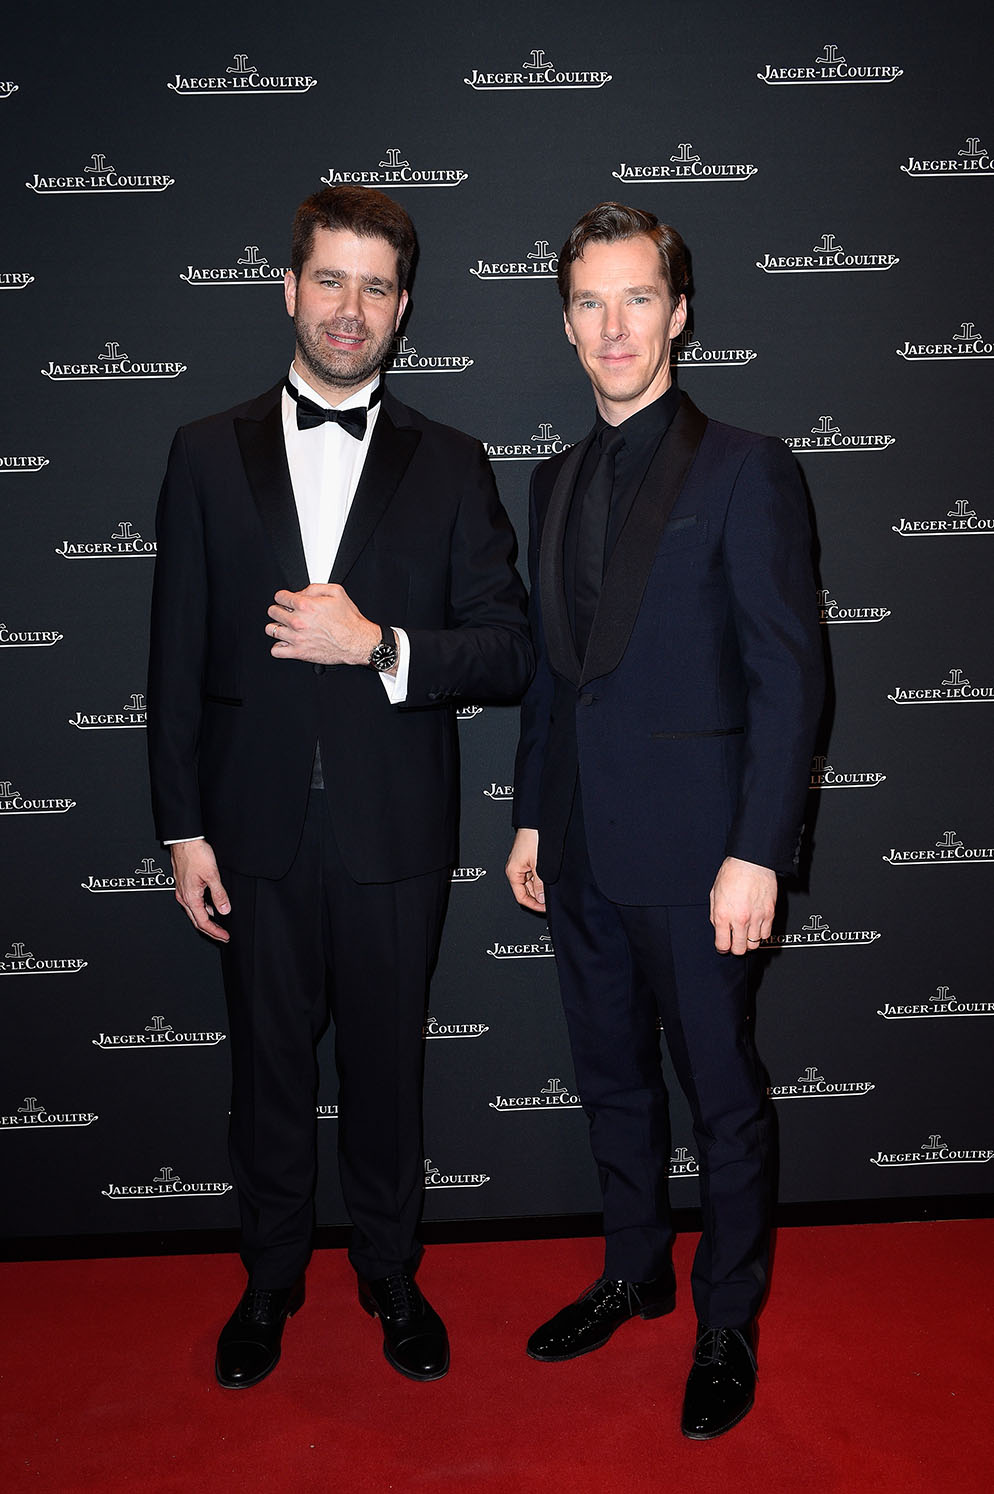 LES ACACIAS, SWITZERLAND - JANUARY 15:  Benedict Cumberbatch (R) and Geoffroy Lefebvre attend Jaeger-LeCoultre Polaris Gala Evening at the SIHH 2018 at Pavillon Sicli on January 15, 2018 in Les Acacias, Switzerland.  (Photo by Kristy Sparow/Getty Images for Jaeger-LeCoultre) *** Local Caption *** Benedict Cumberbatch; Geoffroy Lefebvre